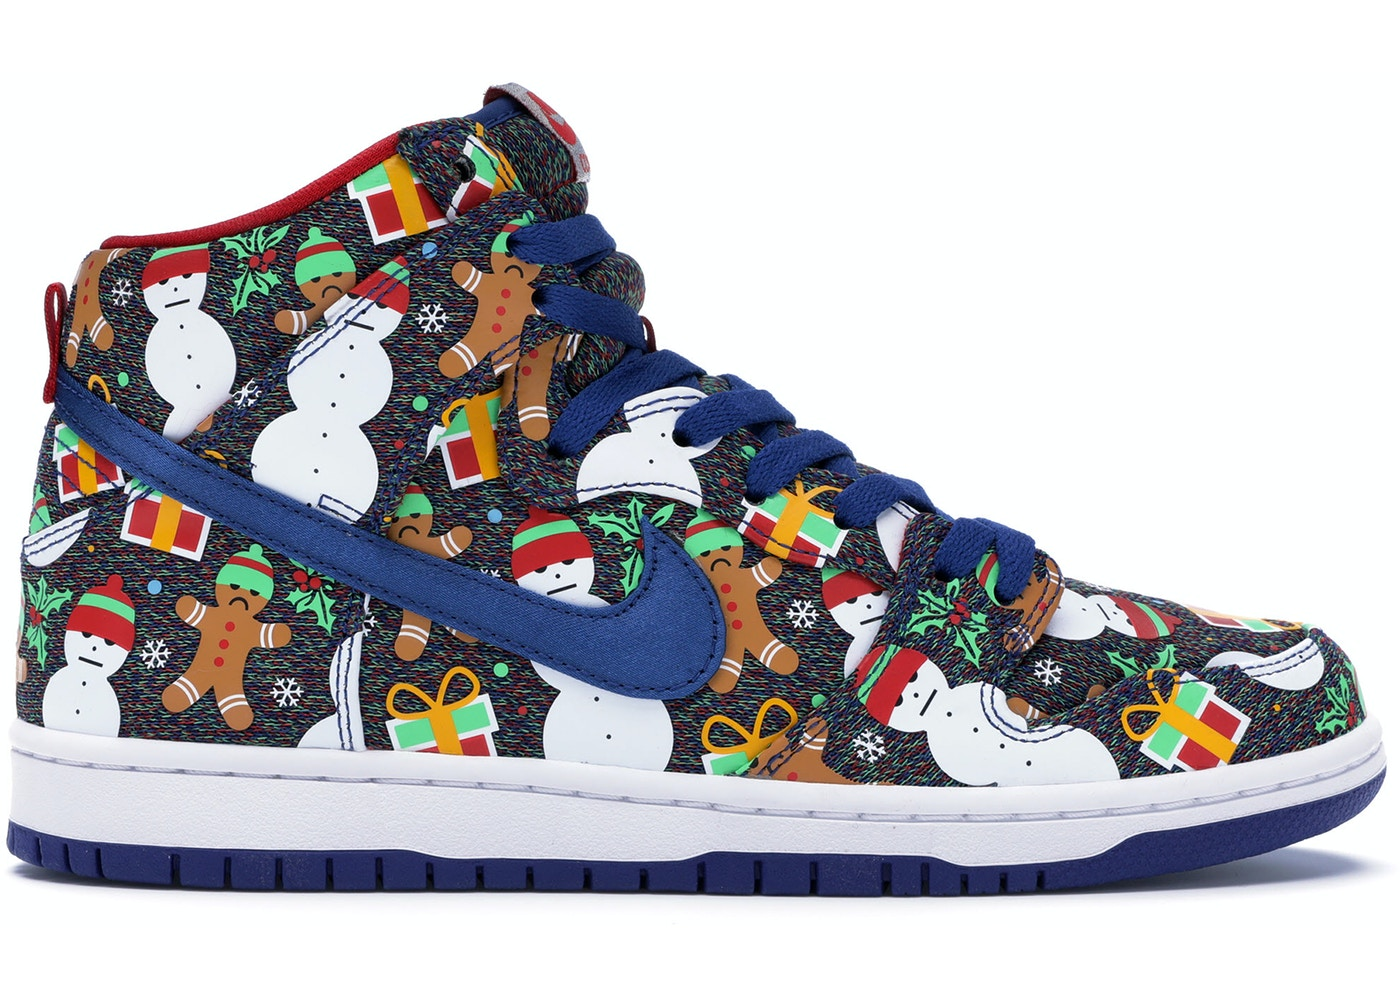 huge discount 27878 784f3 Nike SB Dunk High Concepts Ugly Christmas Sweater (2017) - 881758-446